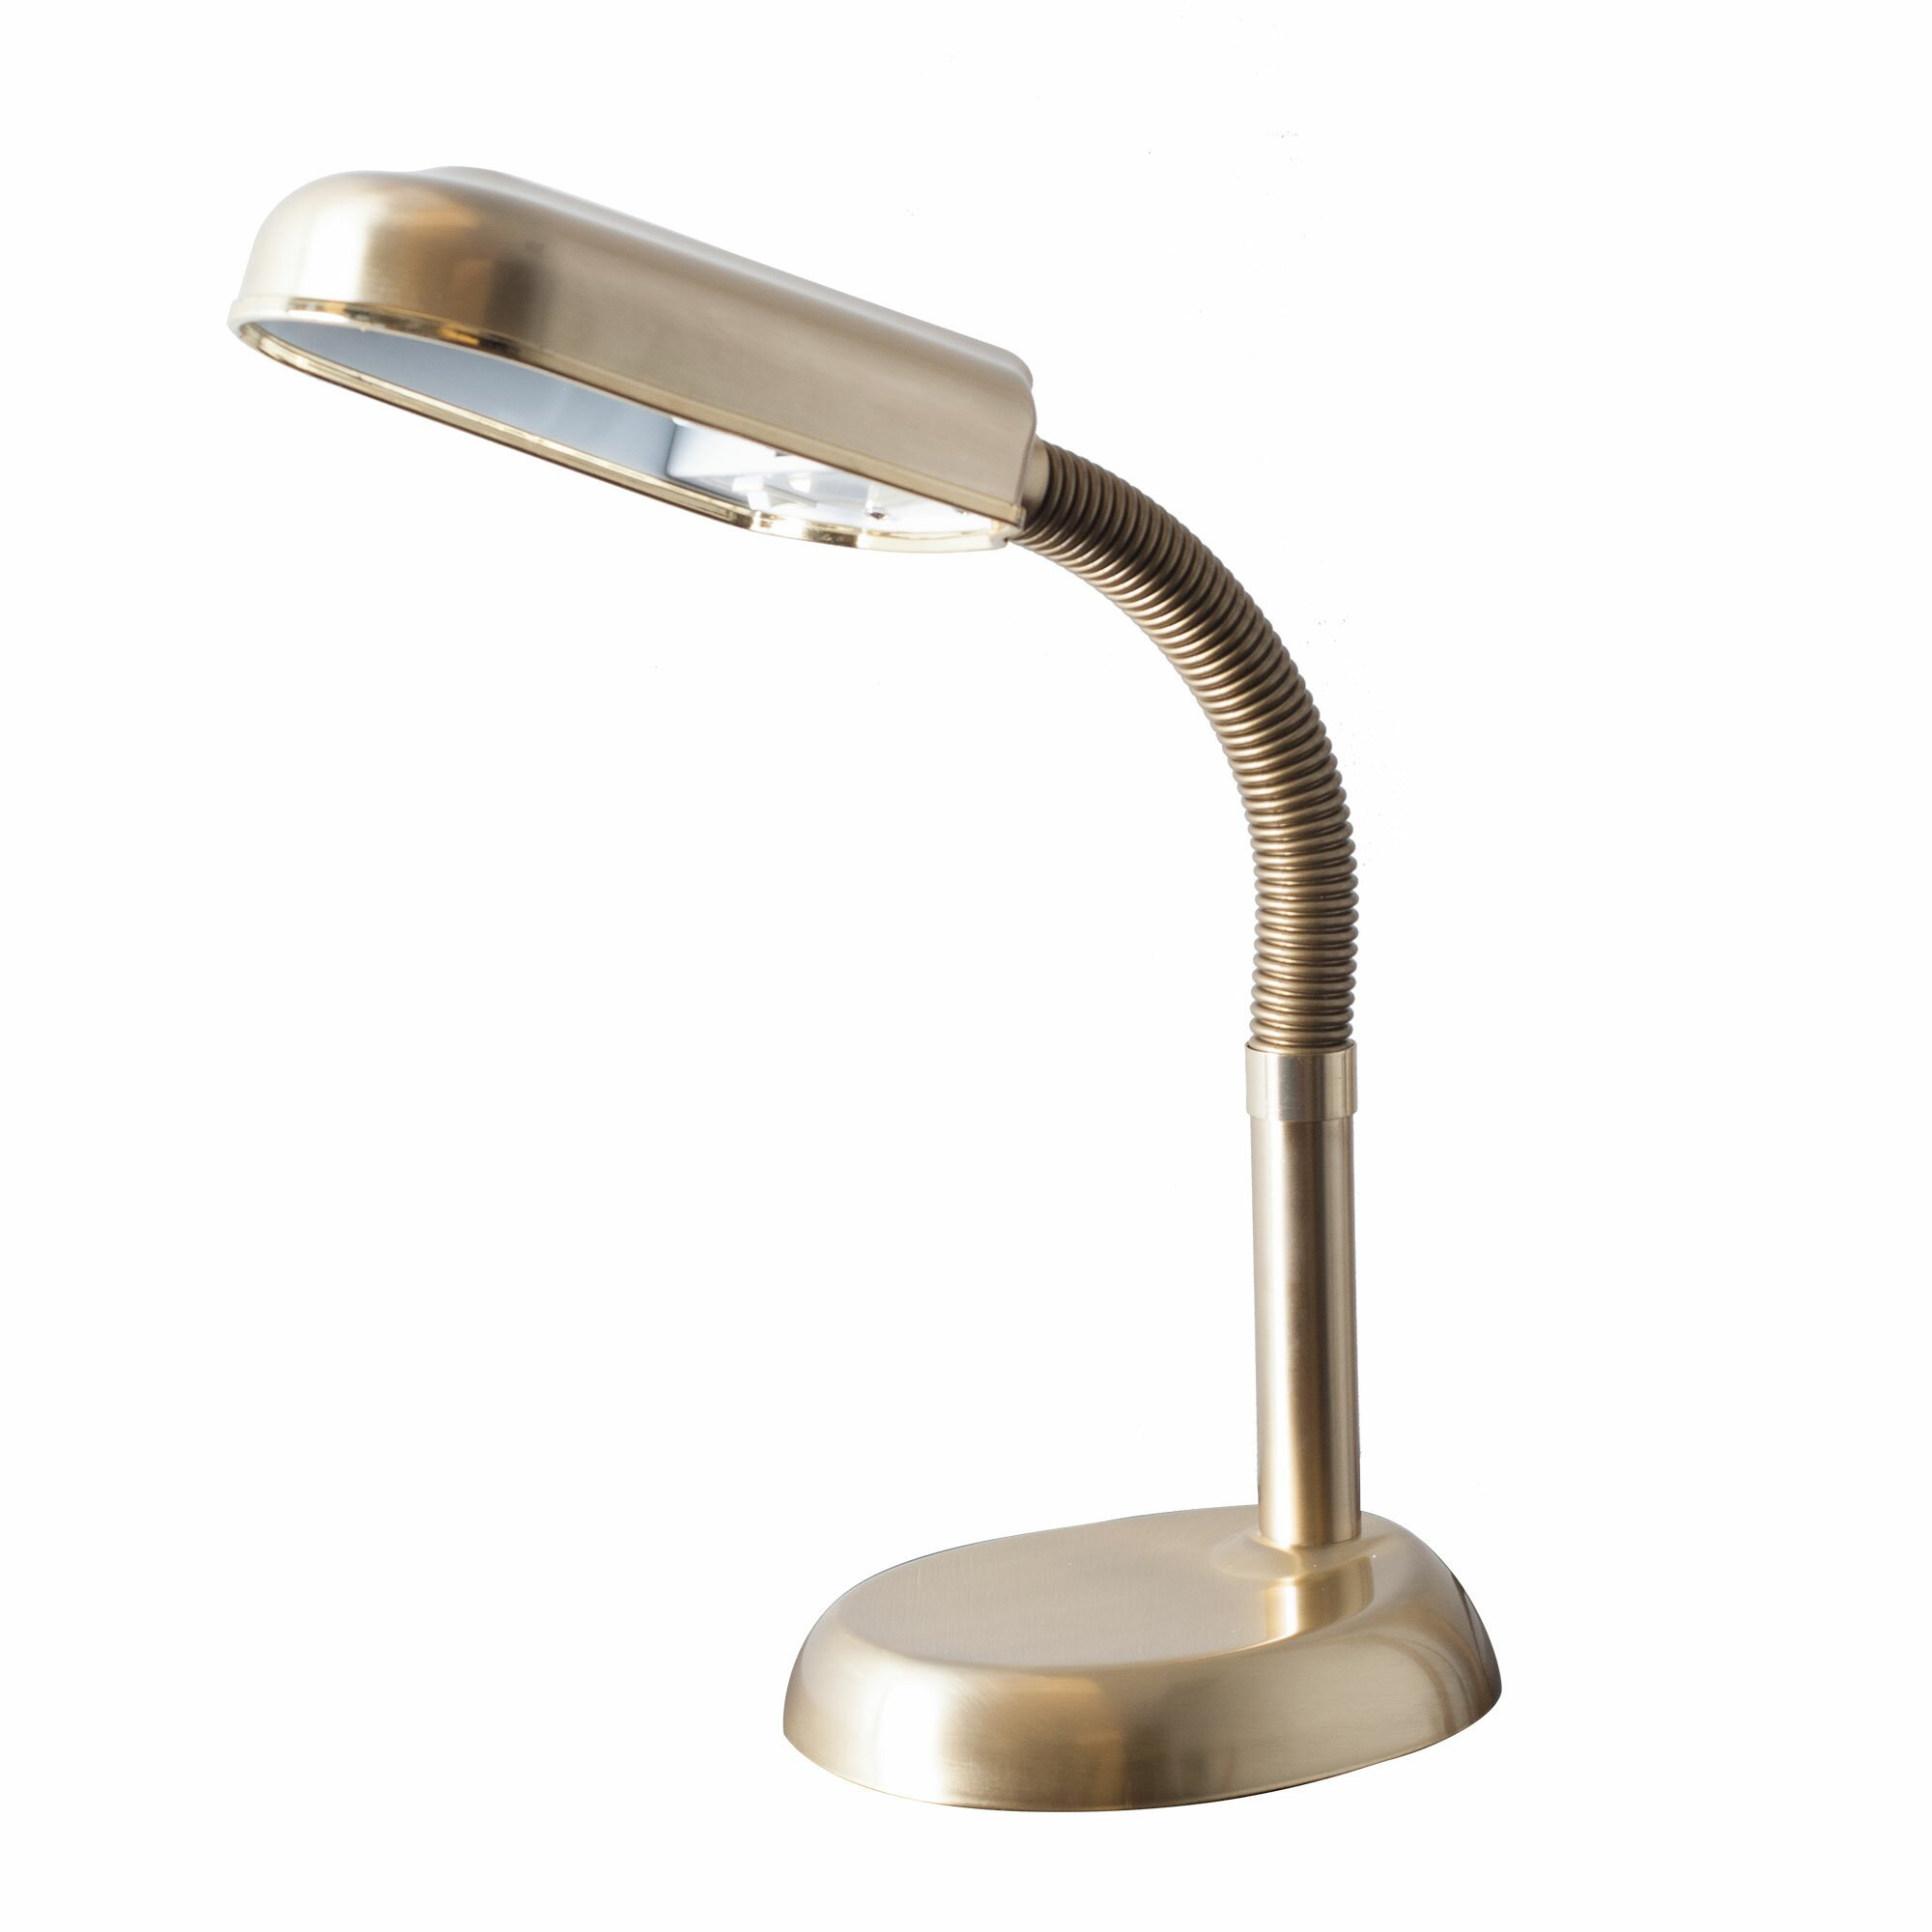 Amazing Review Satechi LED Desk Lamp An Effective Desk Lamp And Handy IPhone